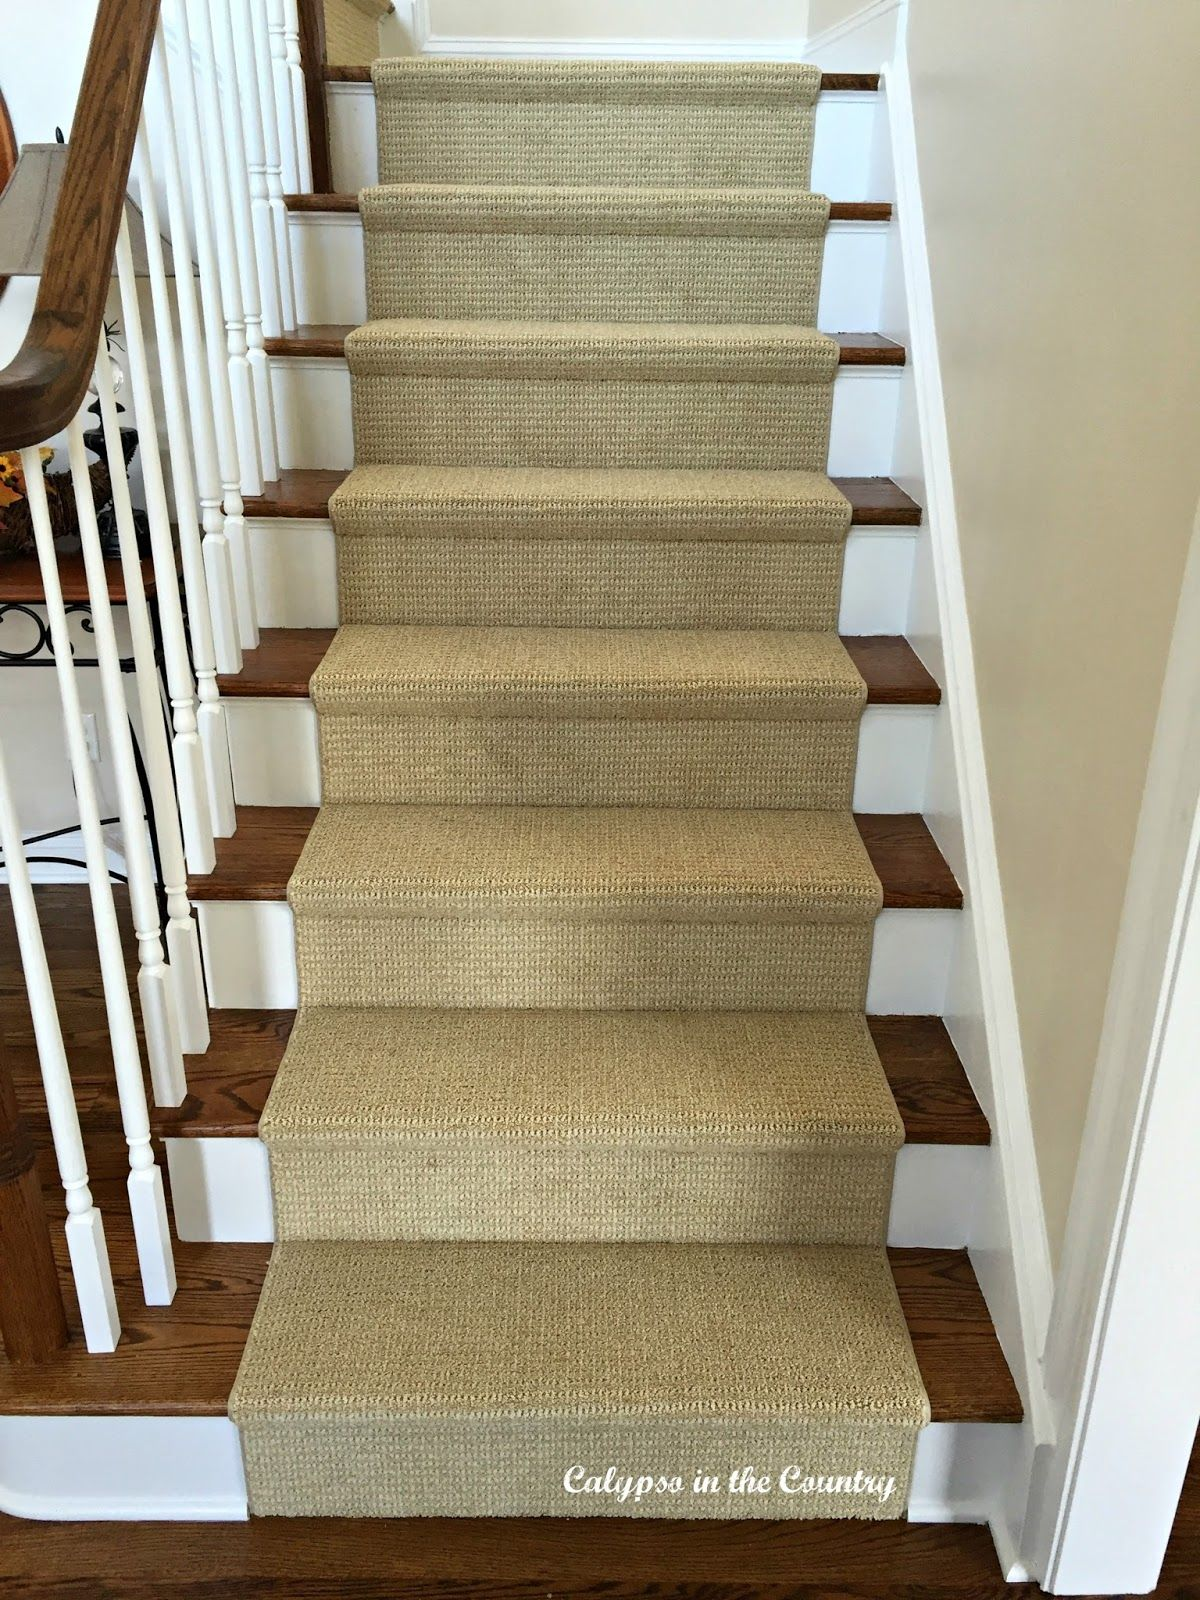 A Sisal Substitute For The Stairs. Sisal Stair RunnerStair RugsStair ...